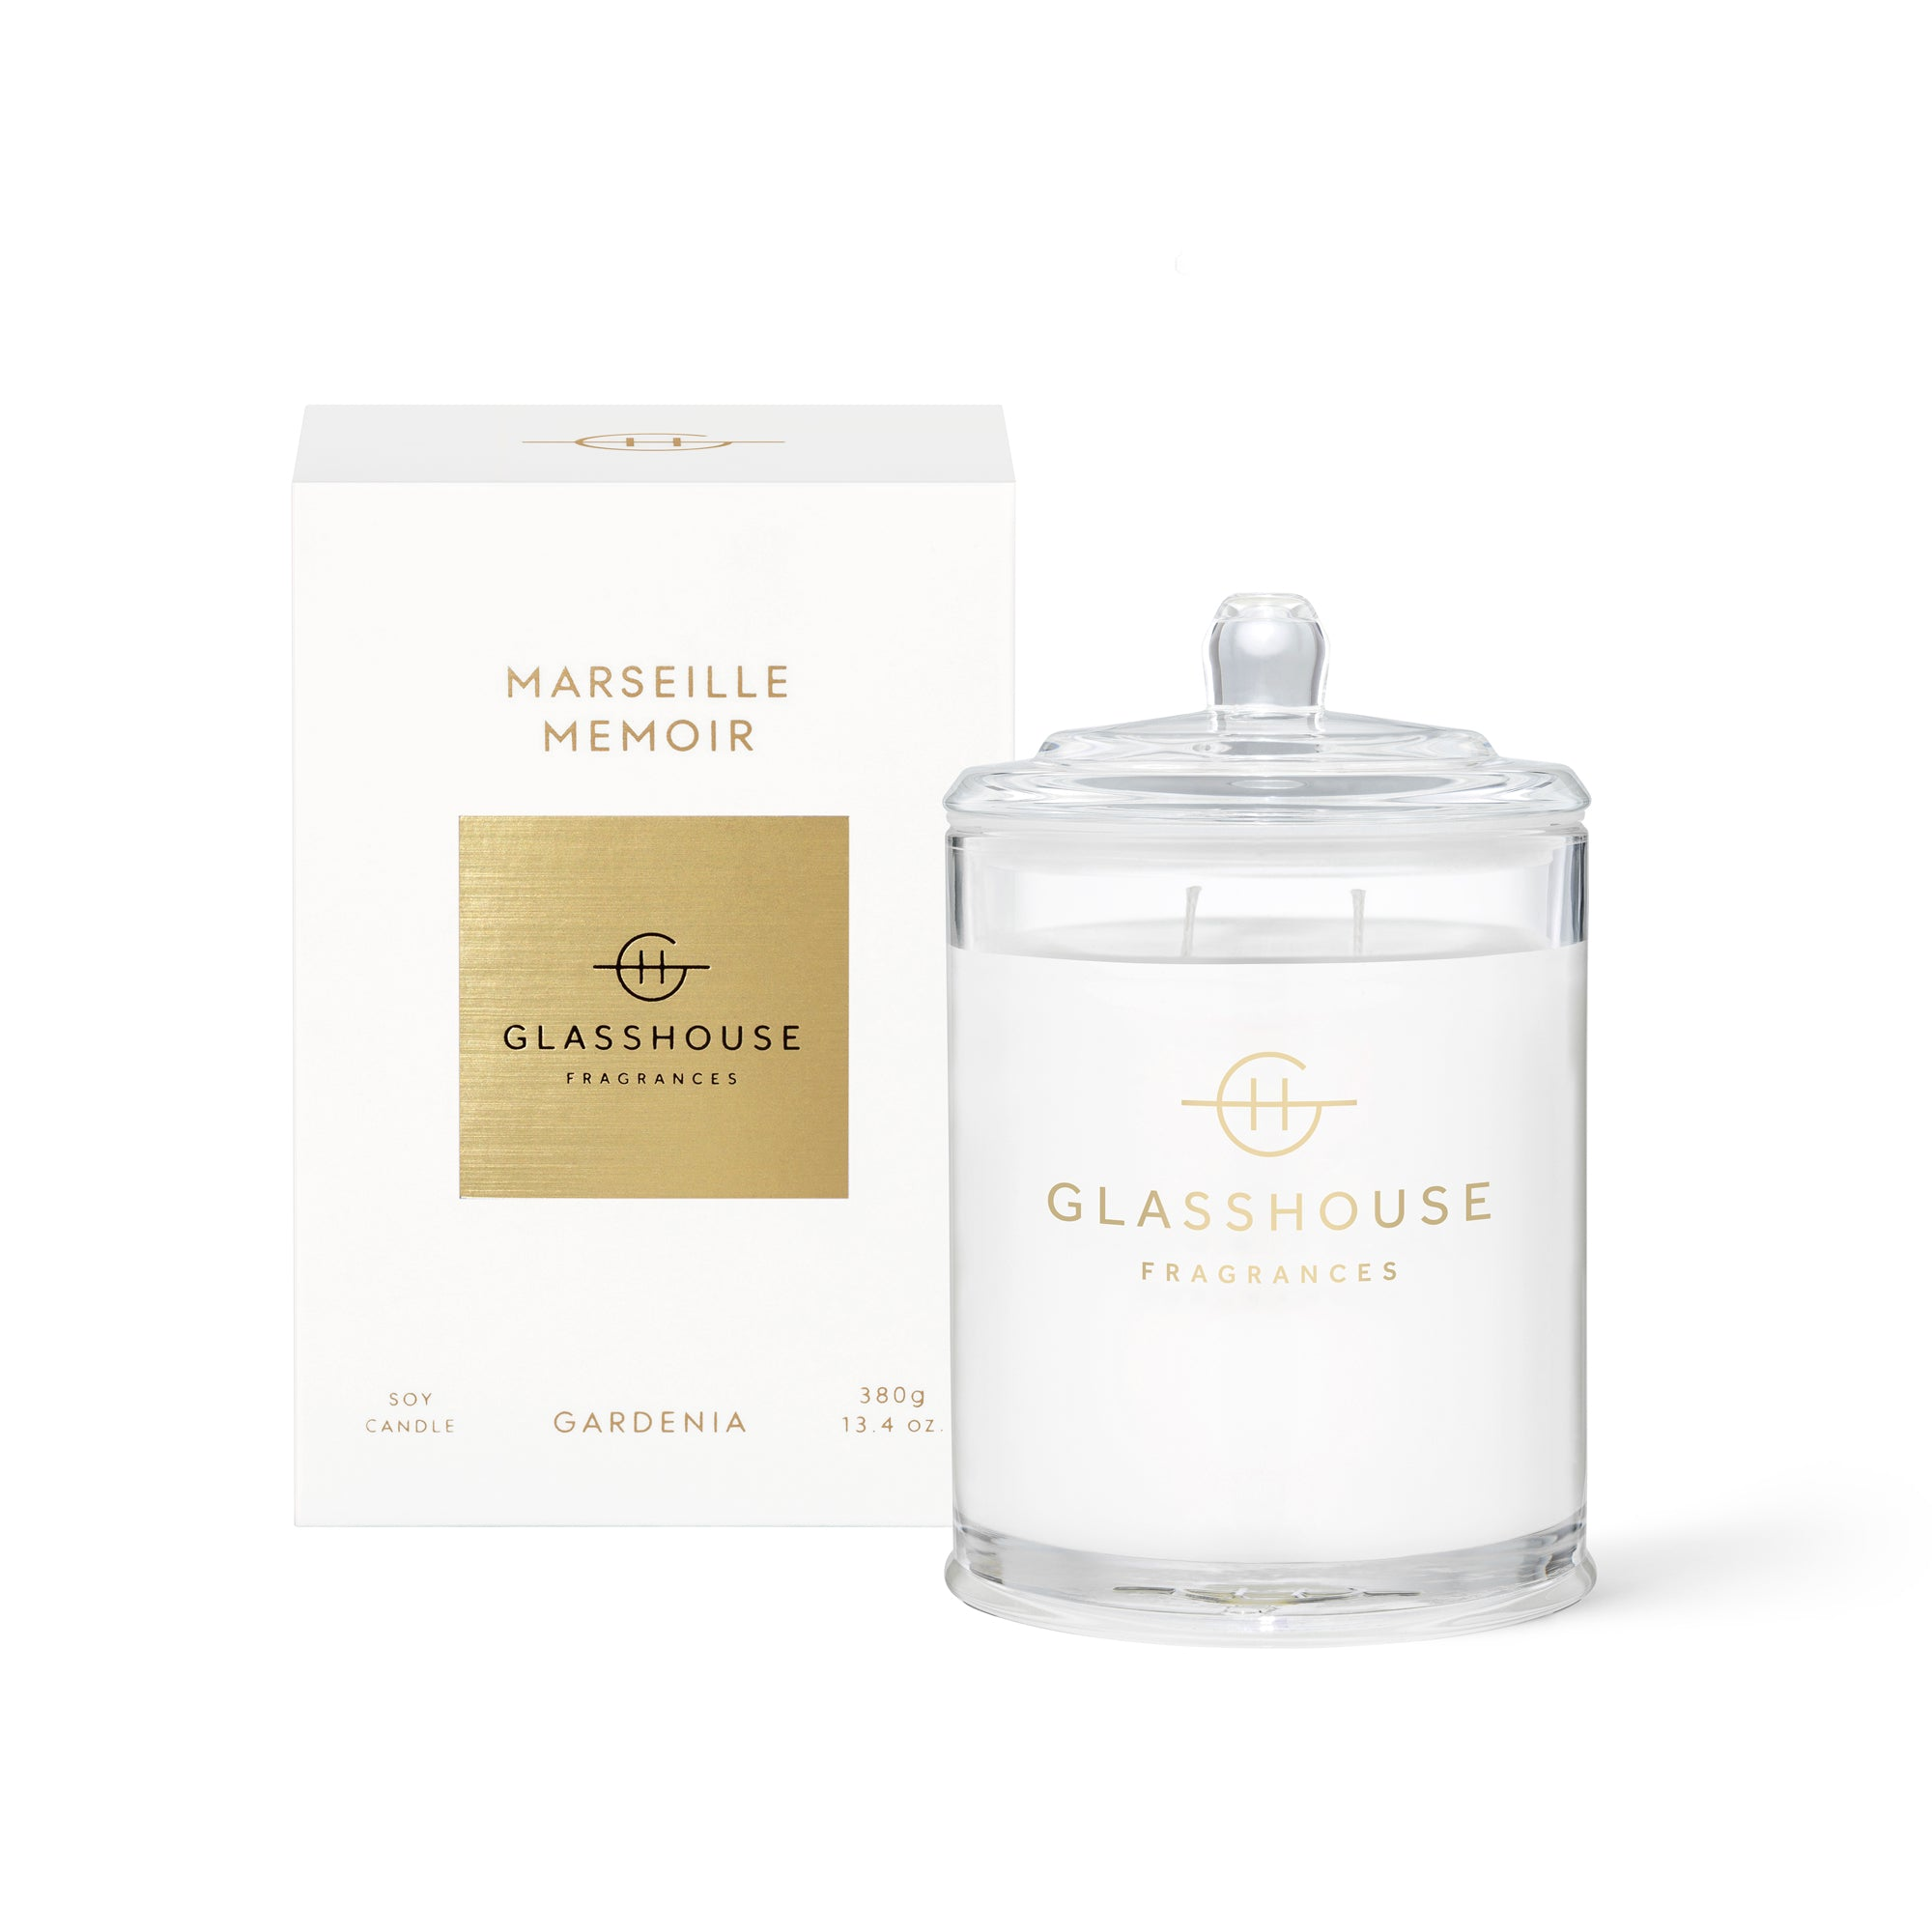 GLASSHOUSE -  MARSEILLE MEMOIR Candle 380g